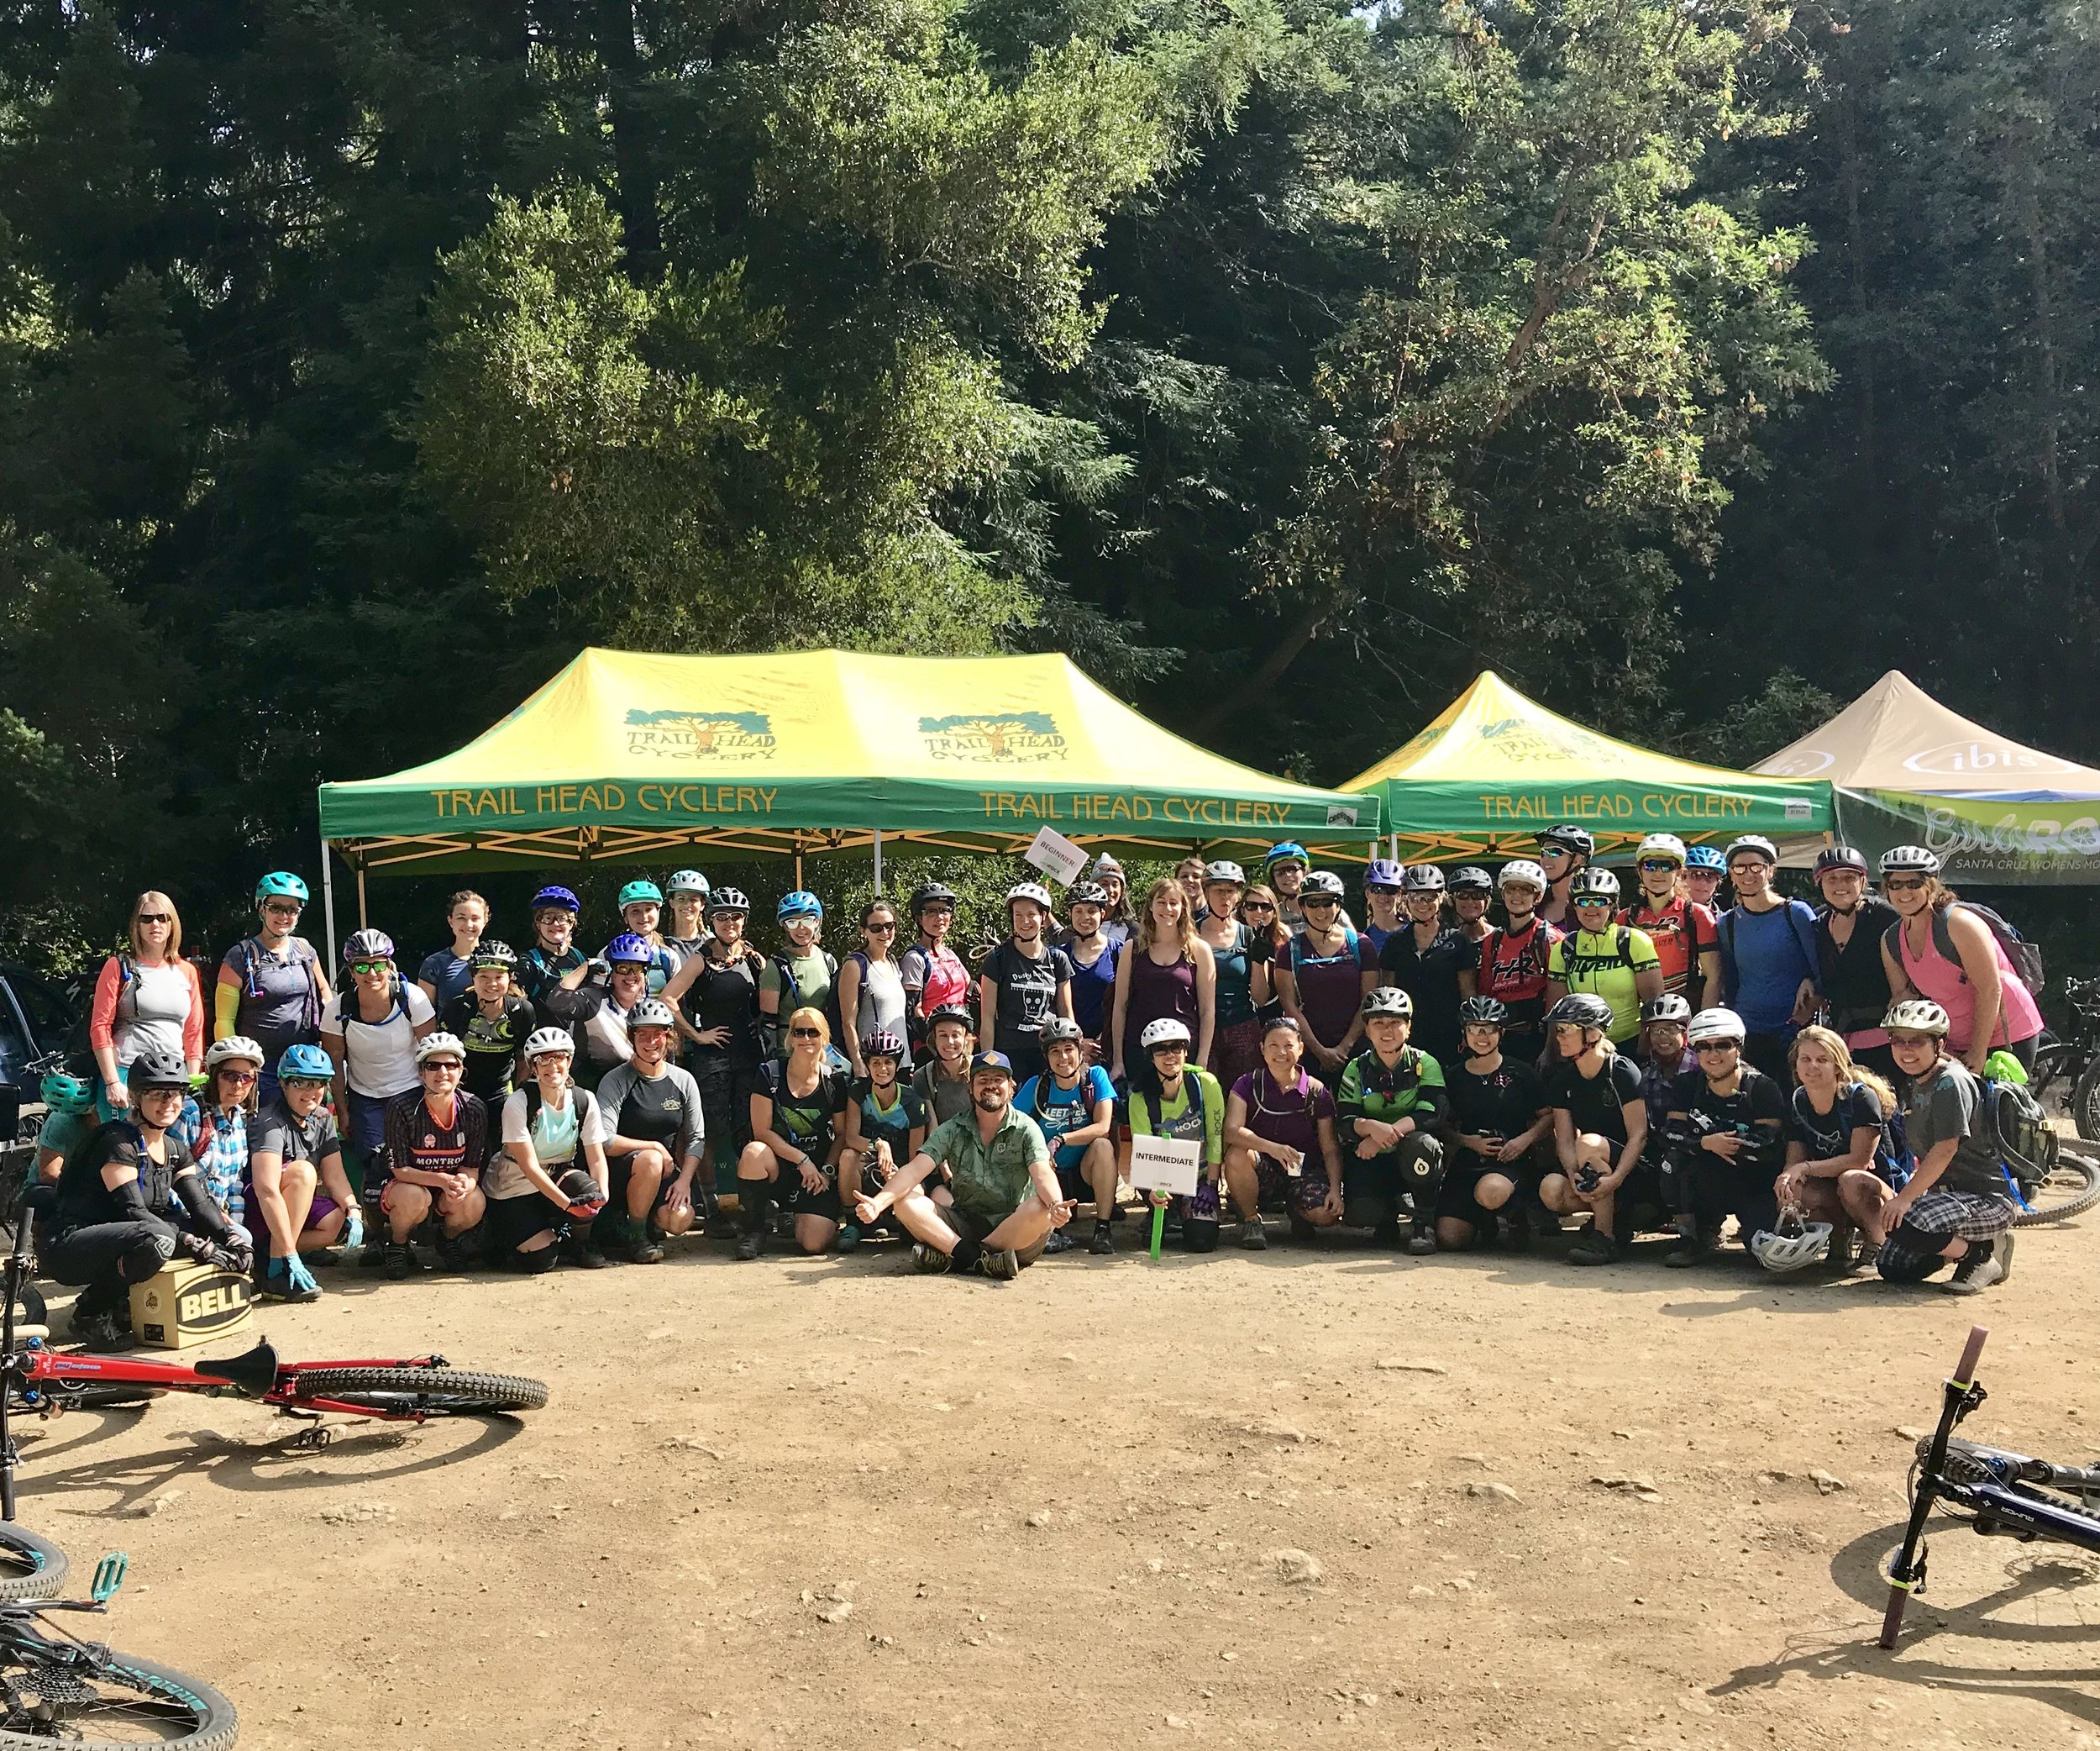 July ride with Trail Head Cyclery @ Demo - July 21